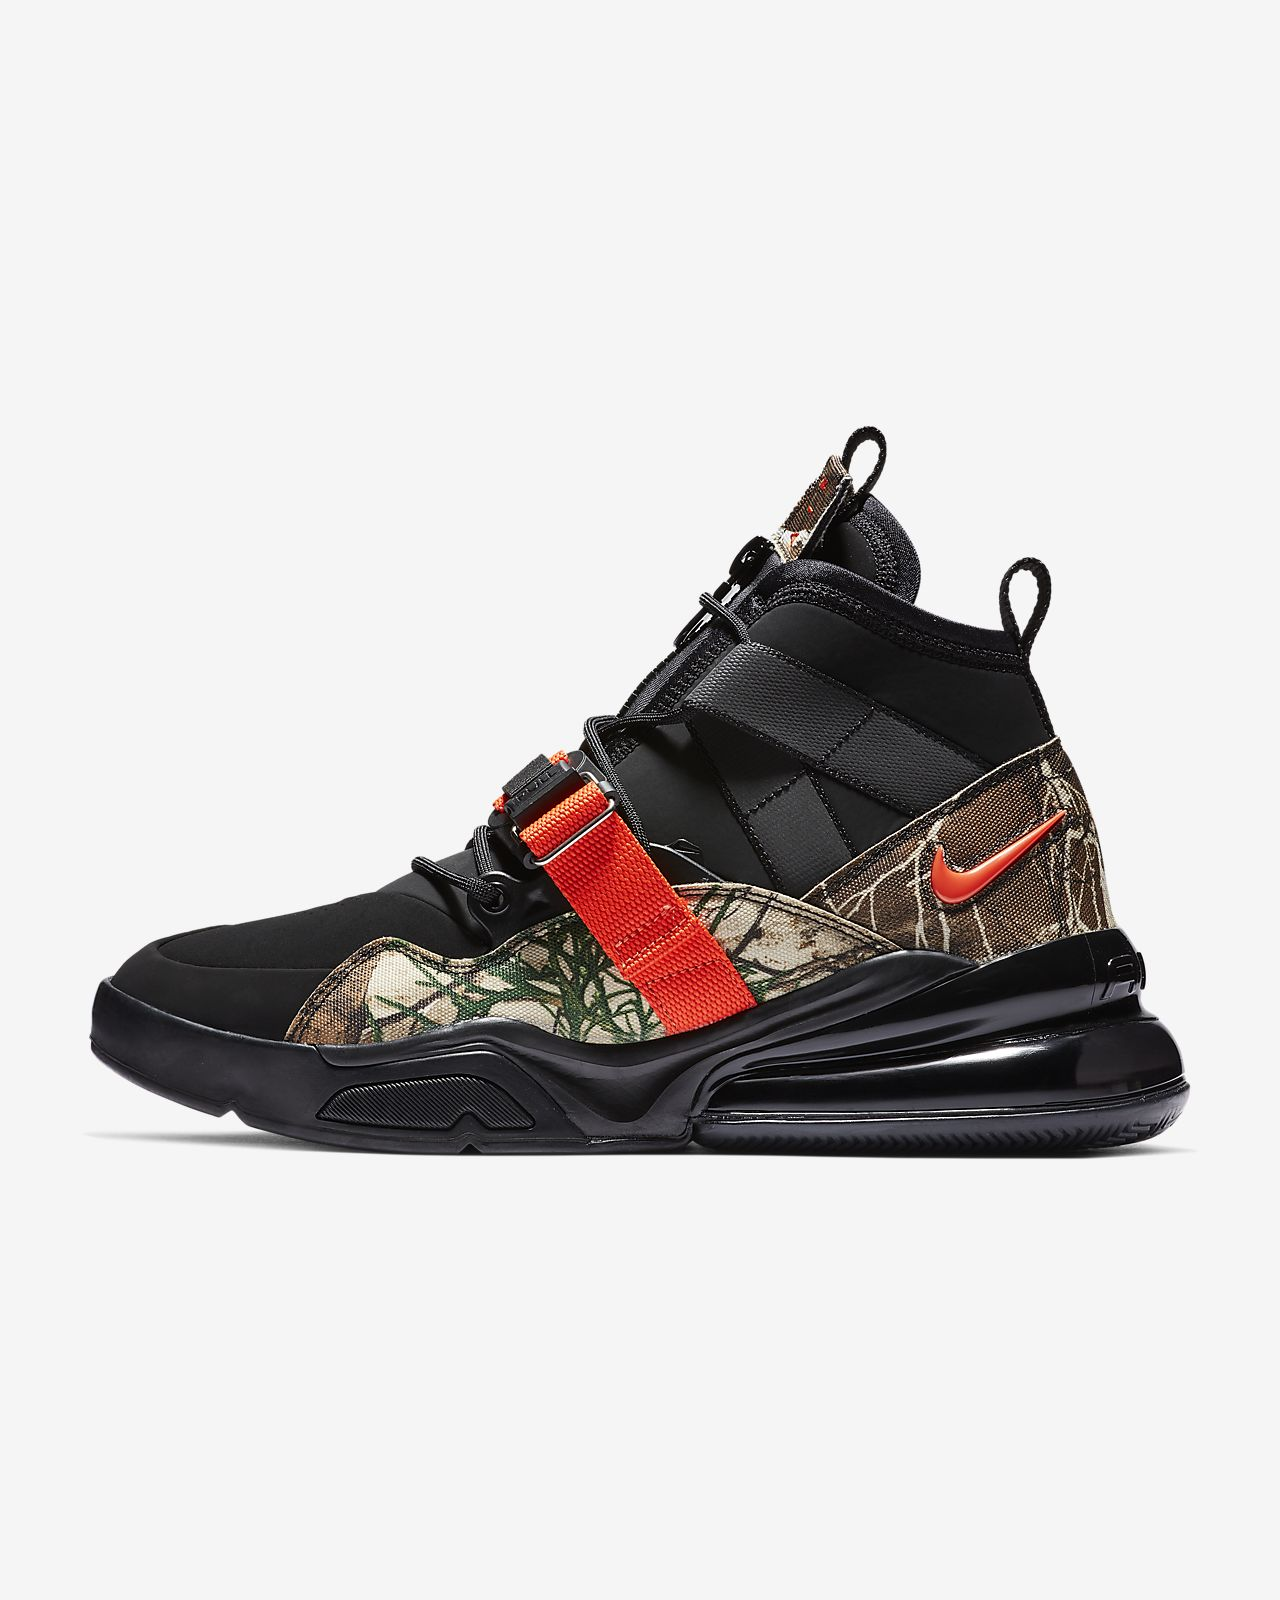 Nike Air Force 270 Utility Realtree BV6071 001 Release Date